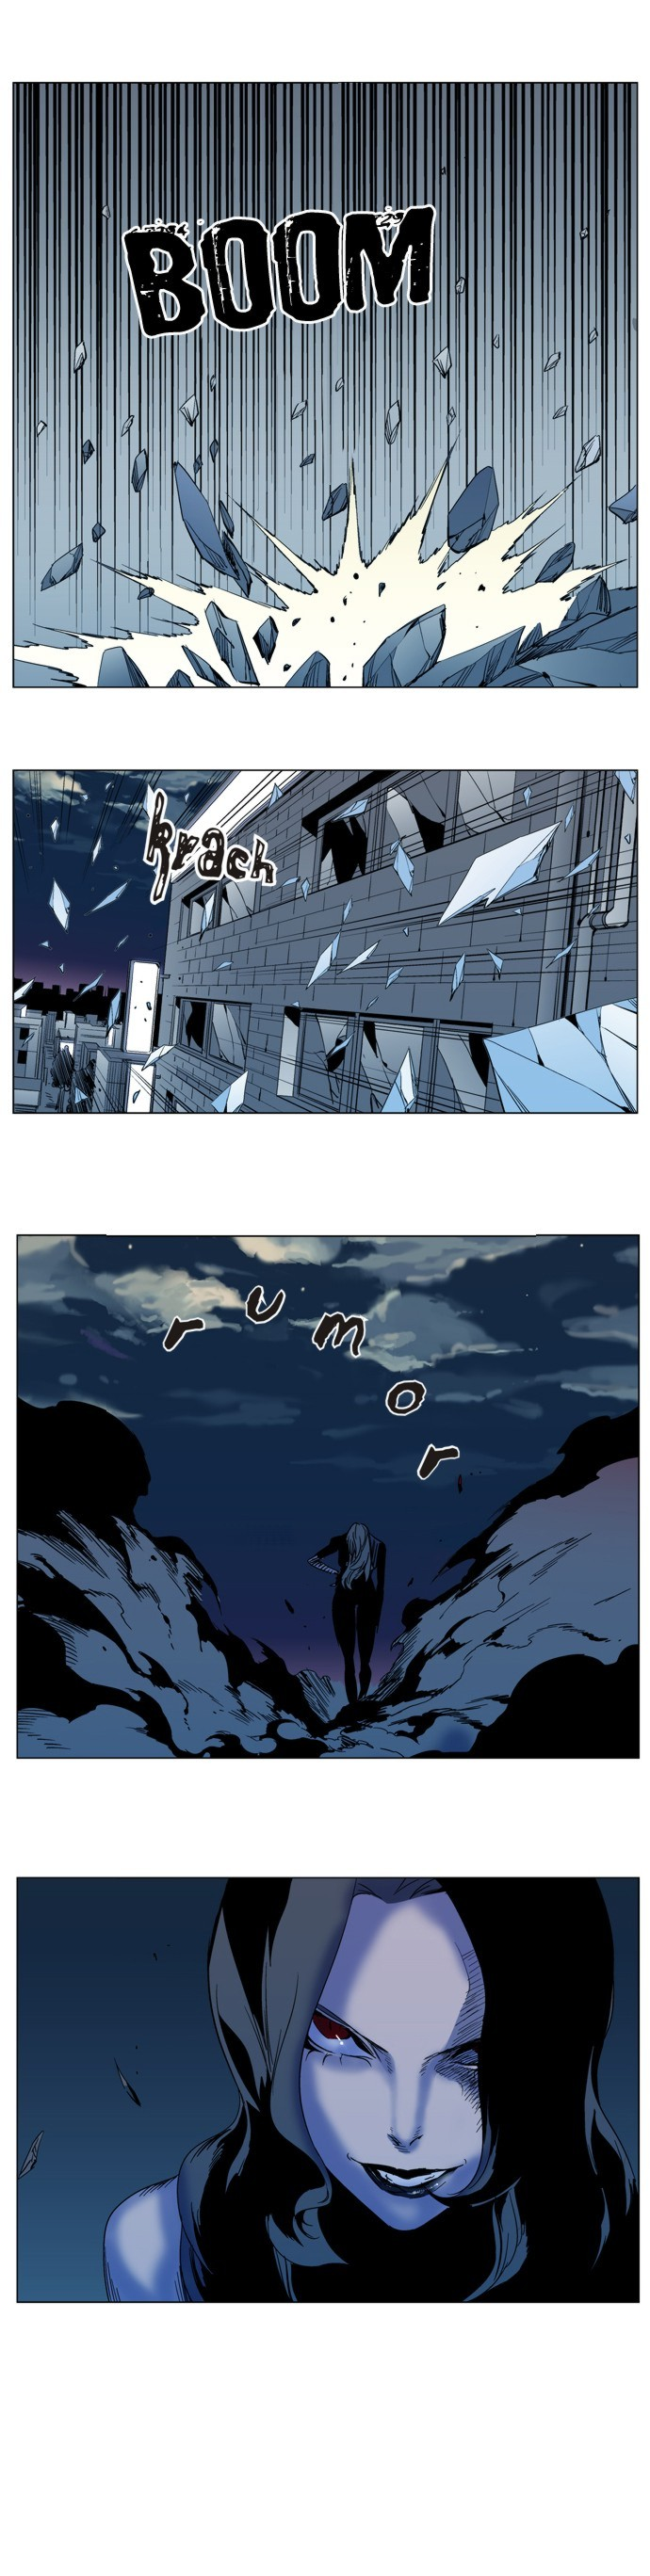 Noblesse ch298 p017